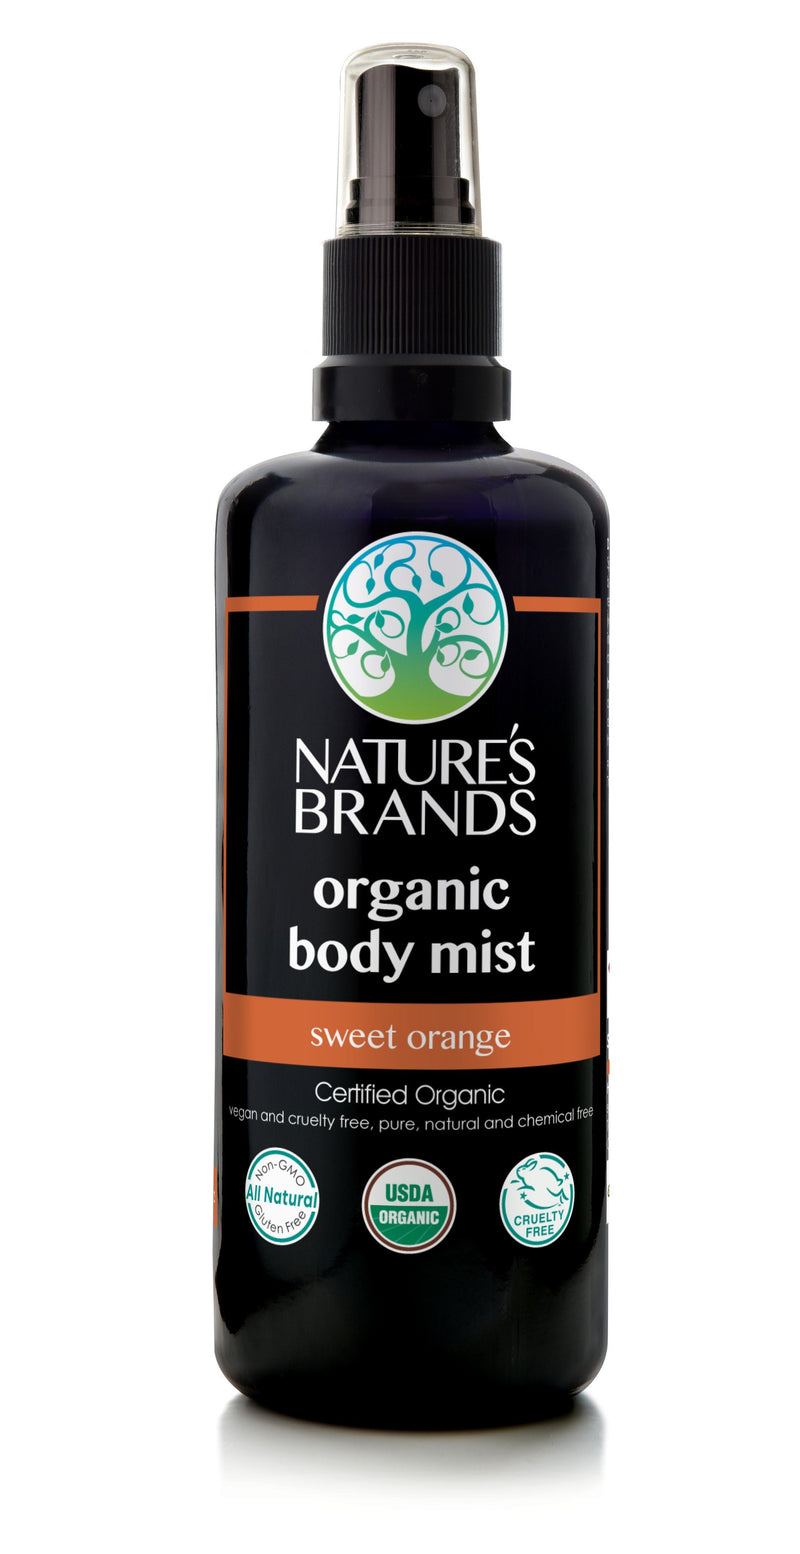 Herbal Choice Mari Organic Body Mist - Herbal Choice Mari Organic Body Mist - 3.4floz